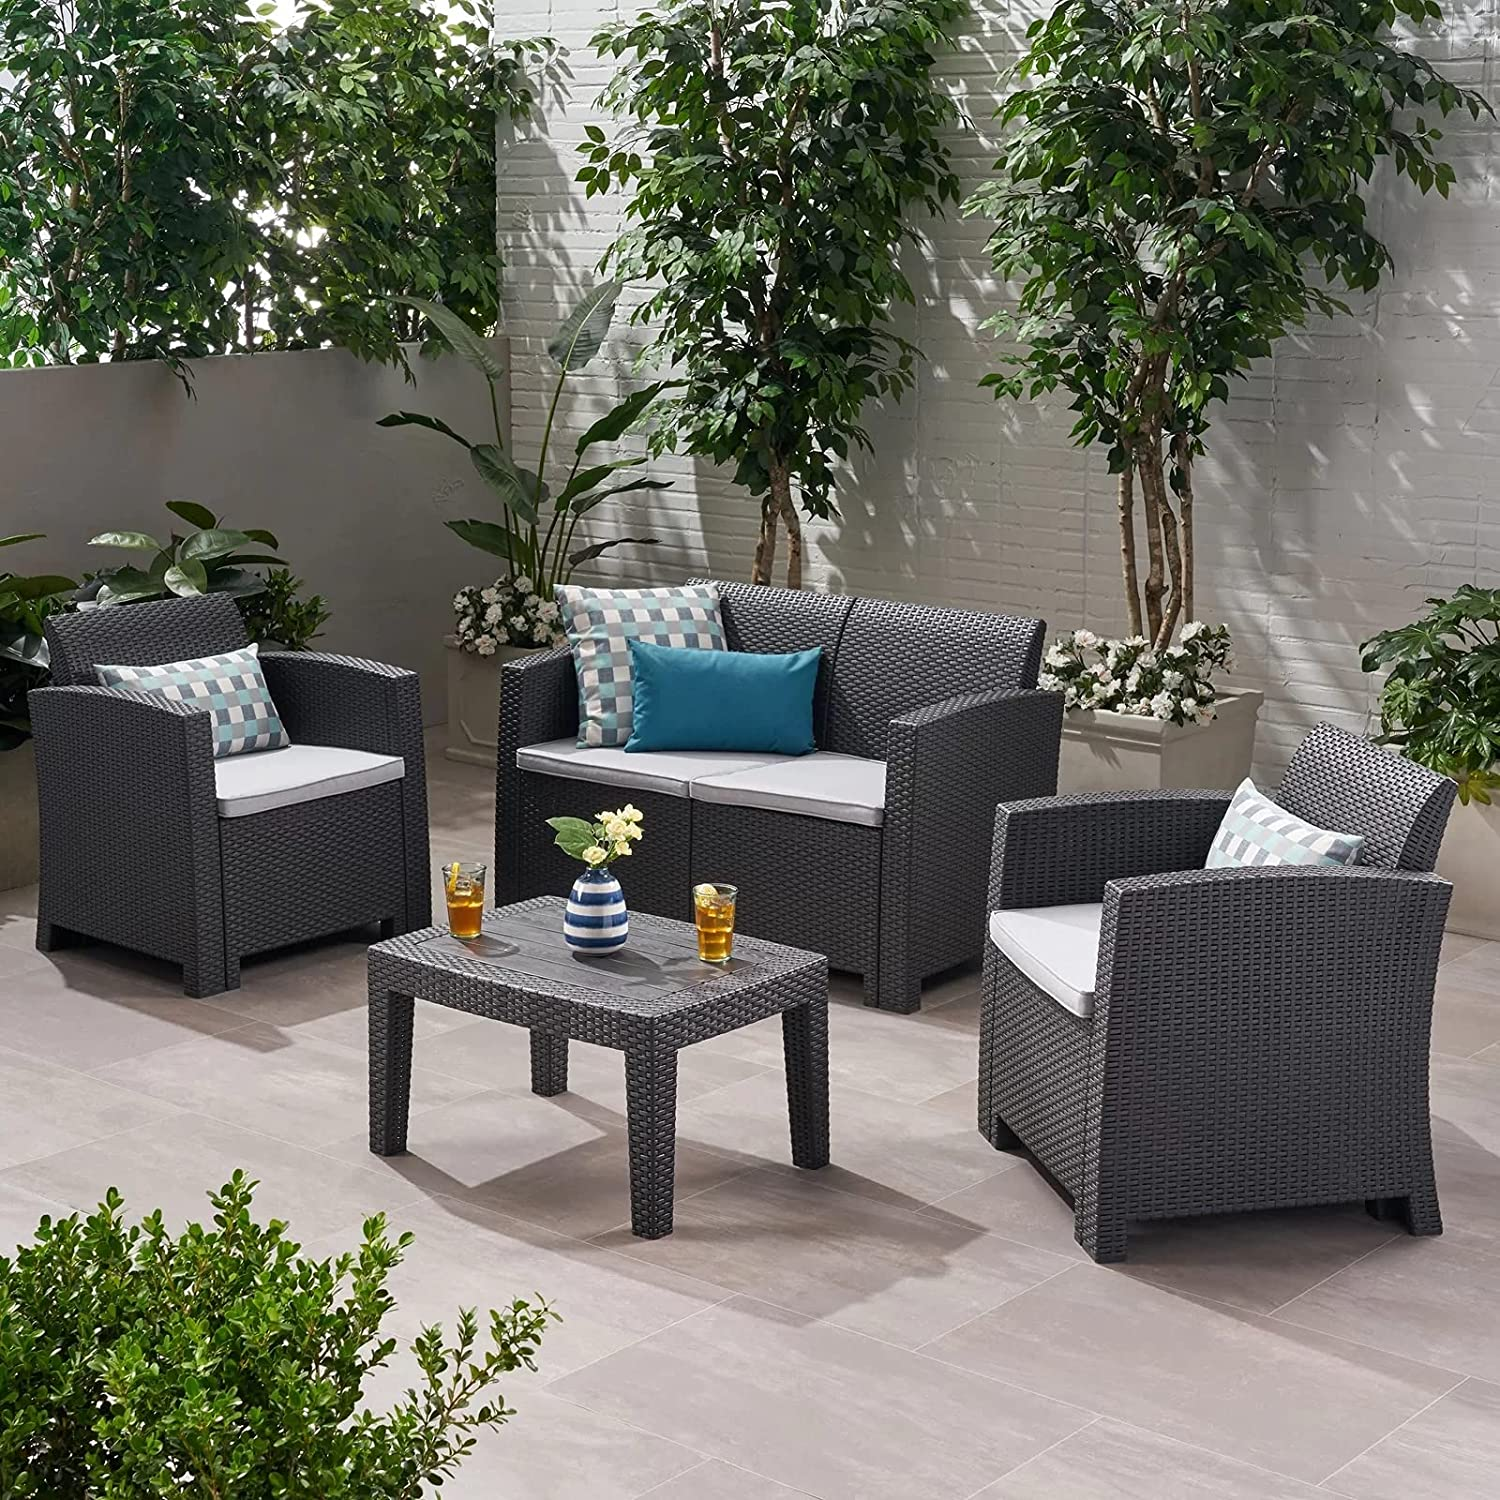 Wicker At the price Patio Furniture Sets Ranking TOP13 Set Furgle Outdoor